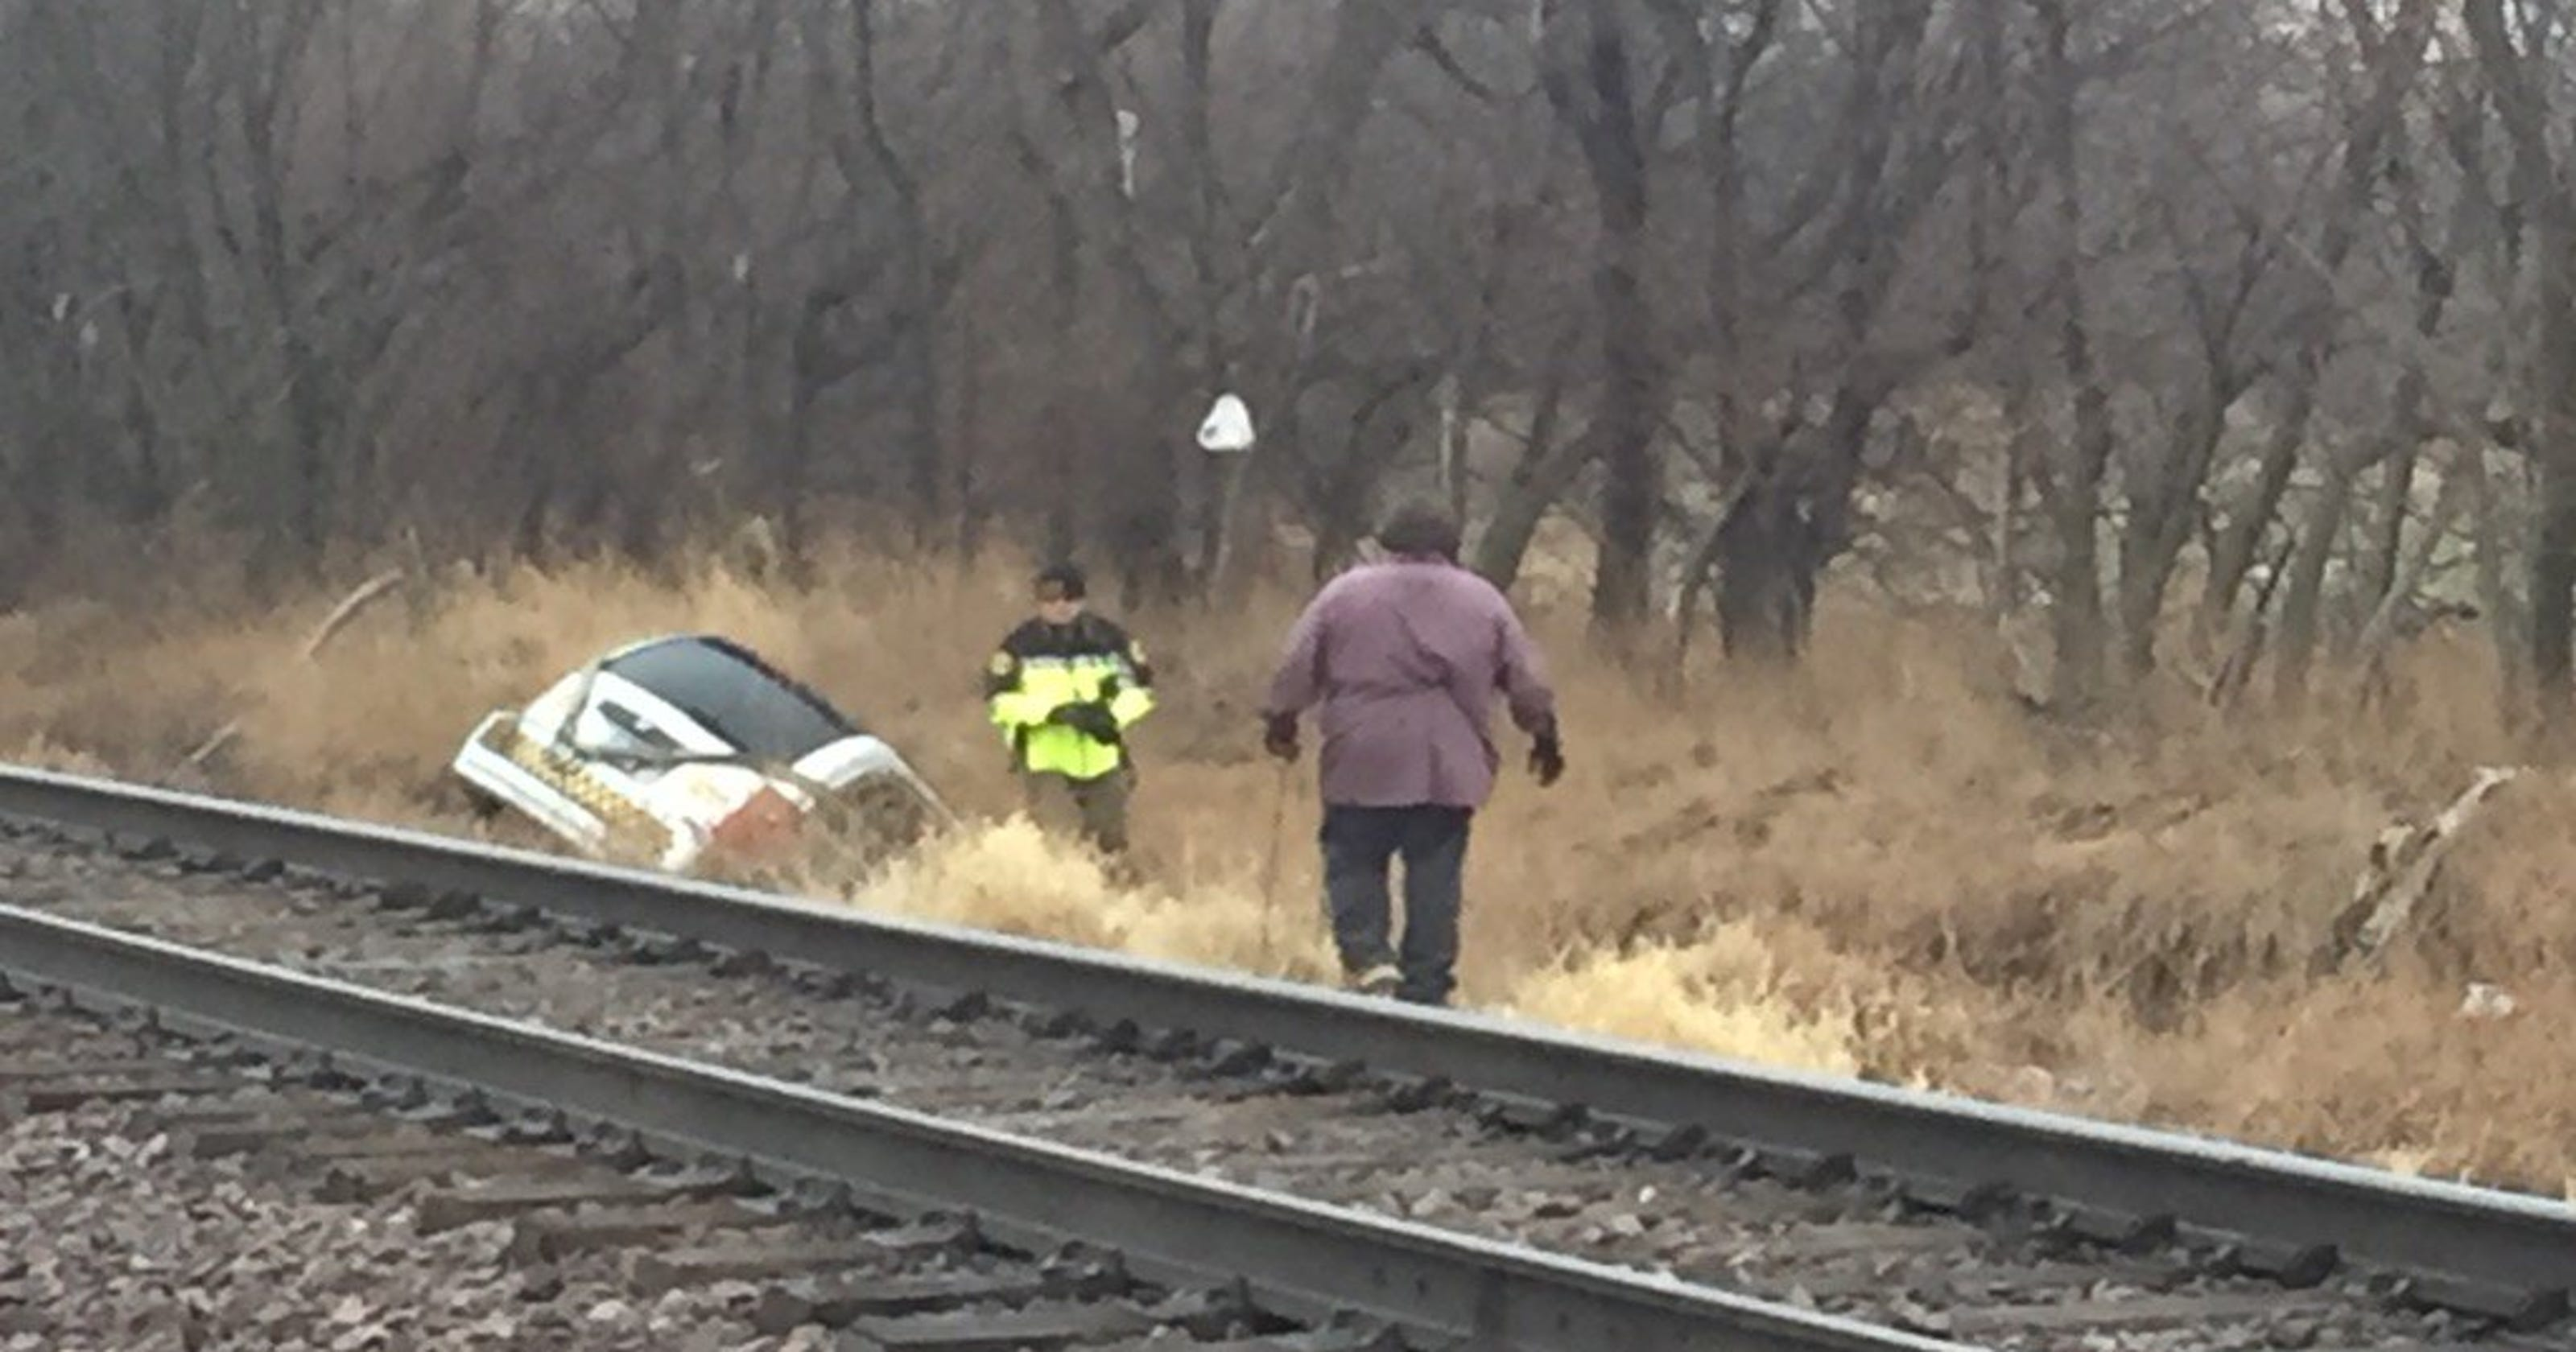 Taxi driver accused in fatal crash had DWI charge in Minnesota